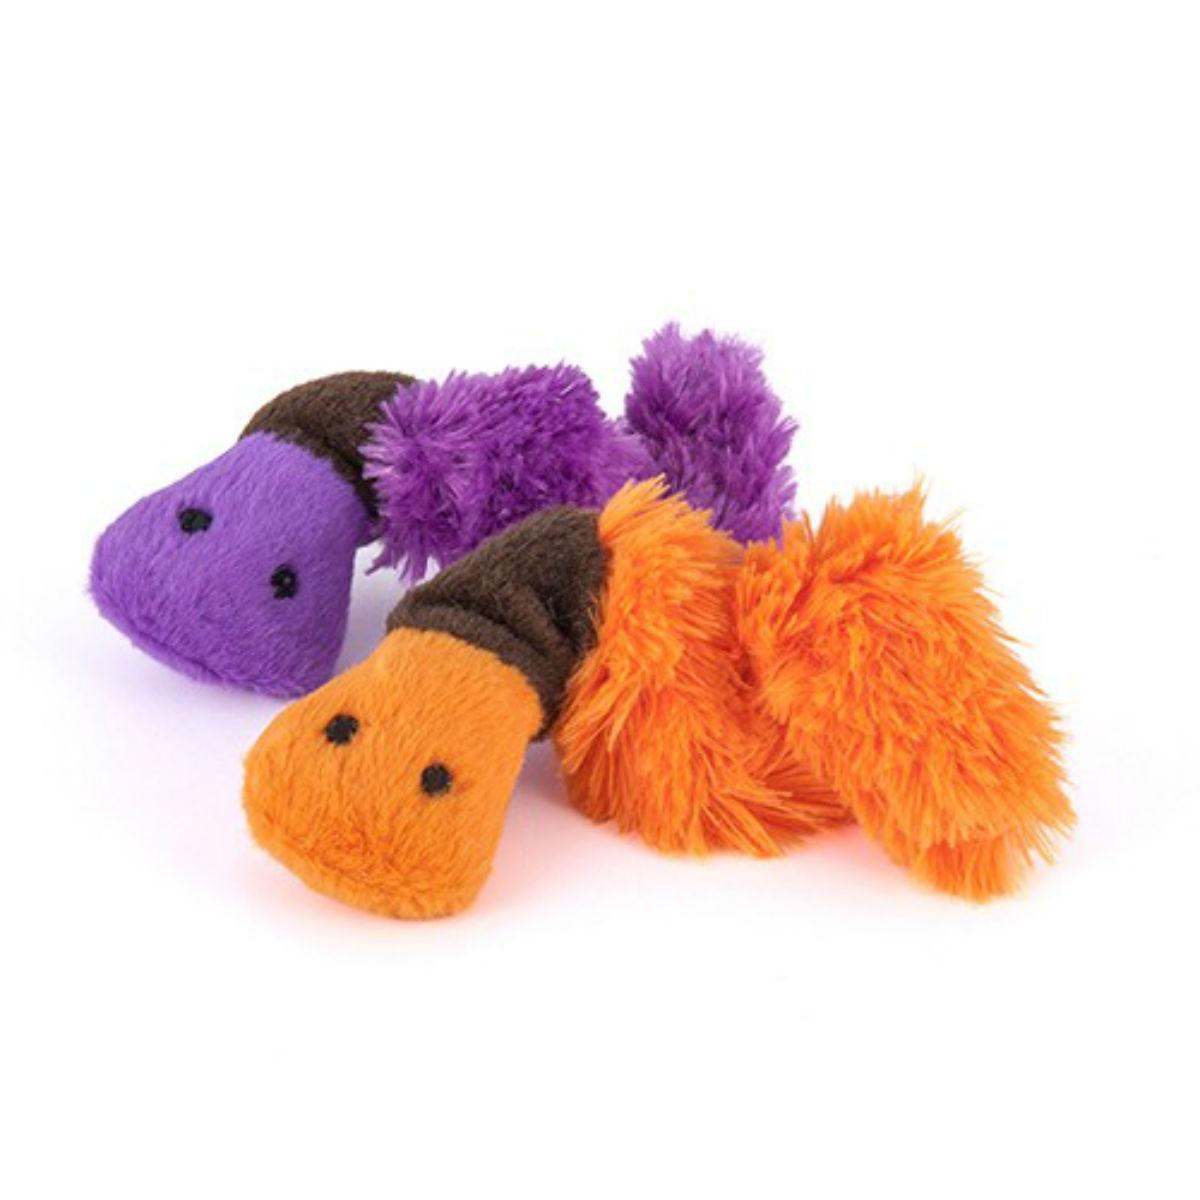 P.L.A.Y. Feline Frenzy Cat Toy - Wiggly Wormies 2 Toy Set